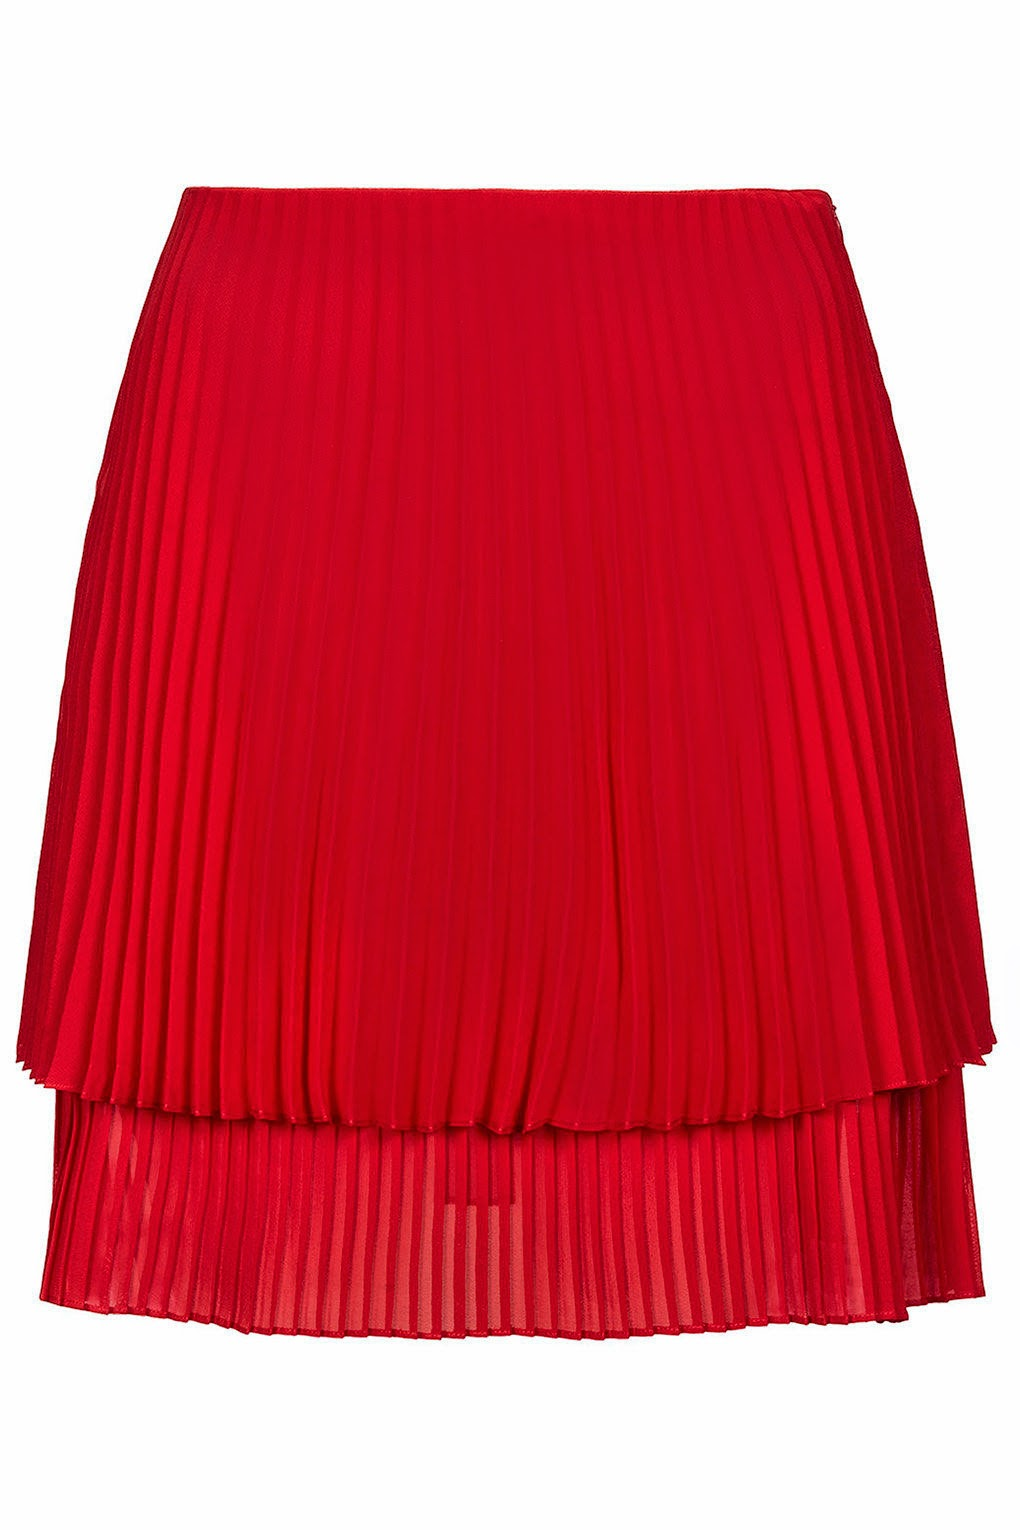 pleated double layer skirt, red pleated skirt, topshop pleated skirt,